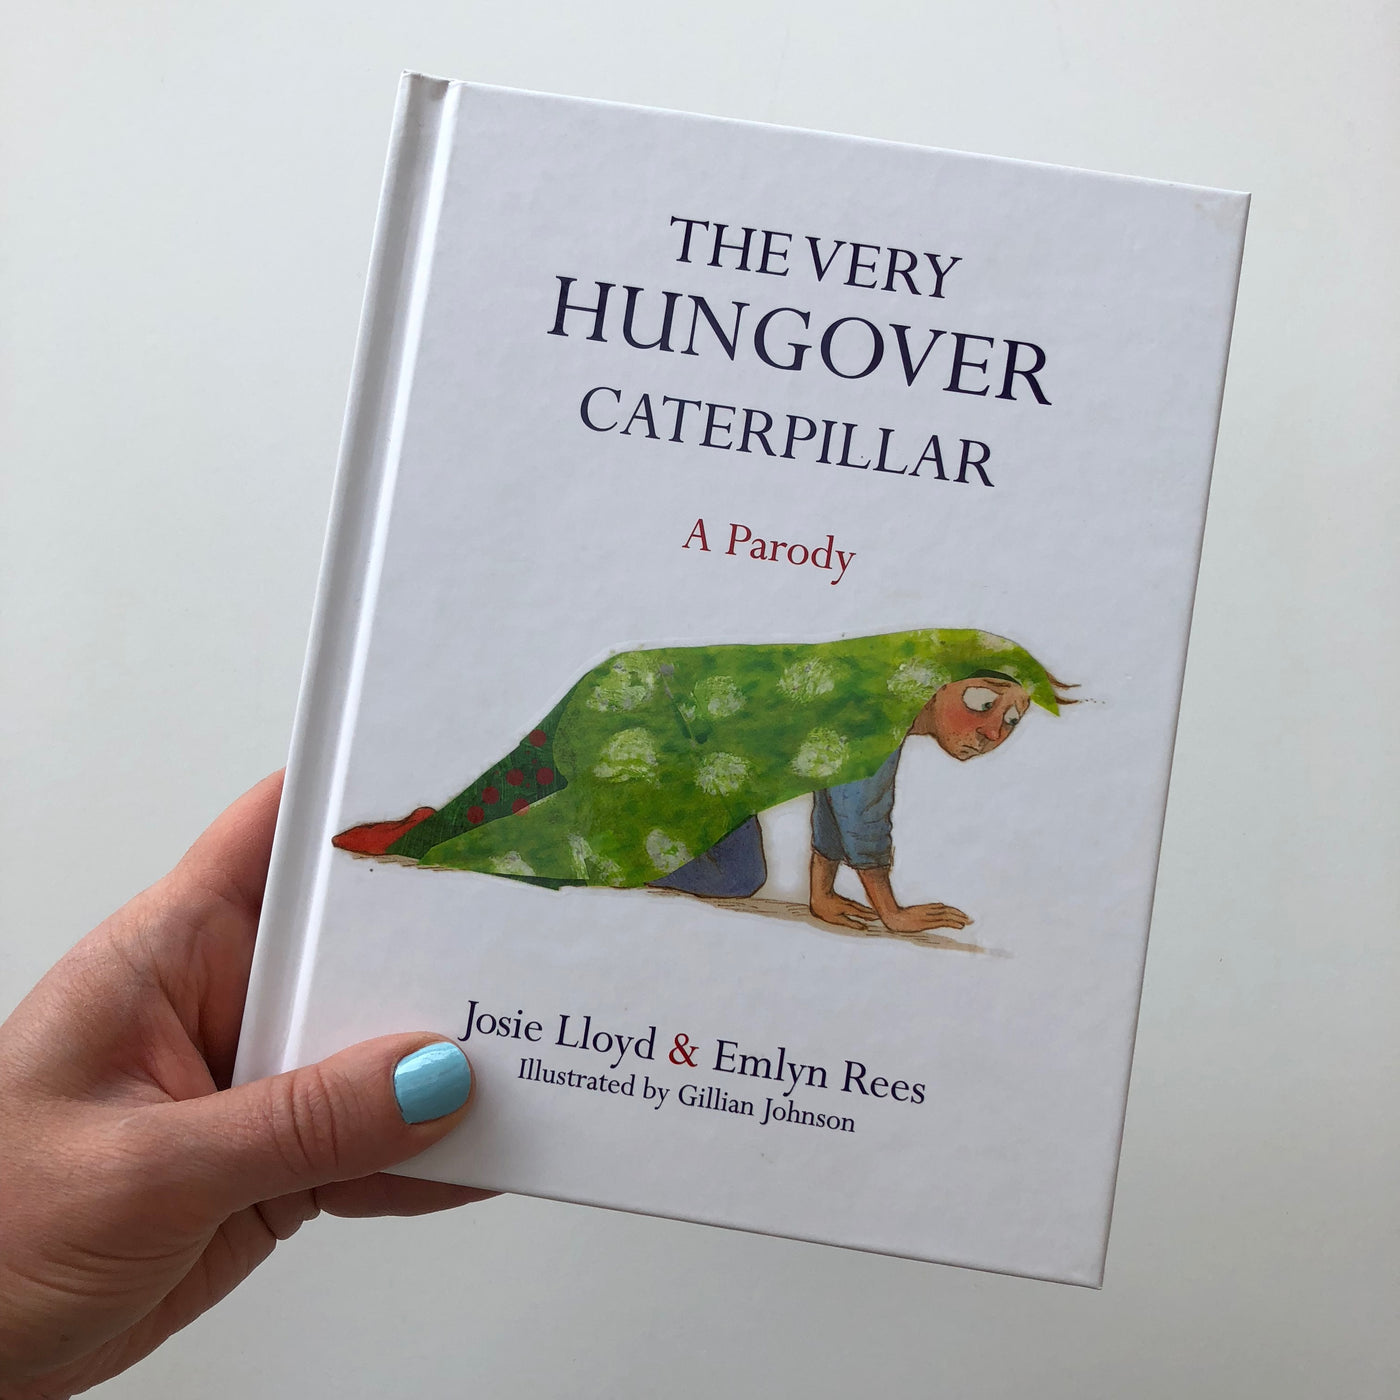 The Very Hungover Caterpillar - Josie Lioyd, Emlyn Rees